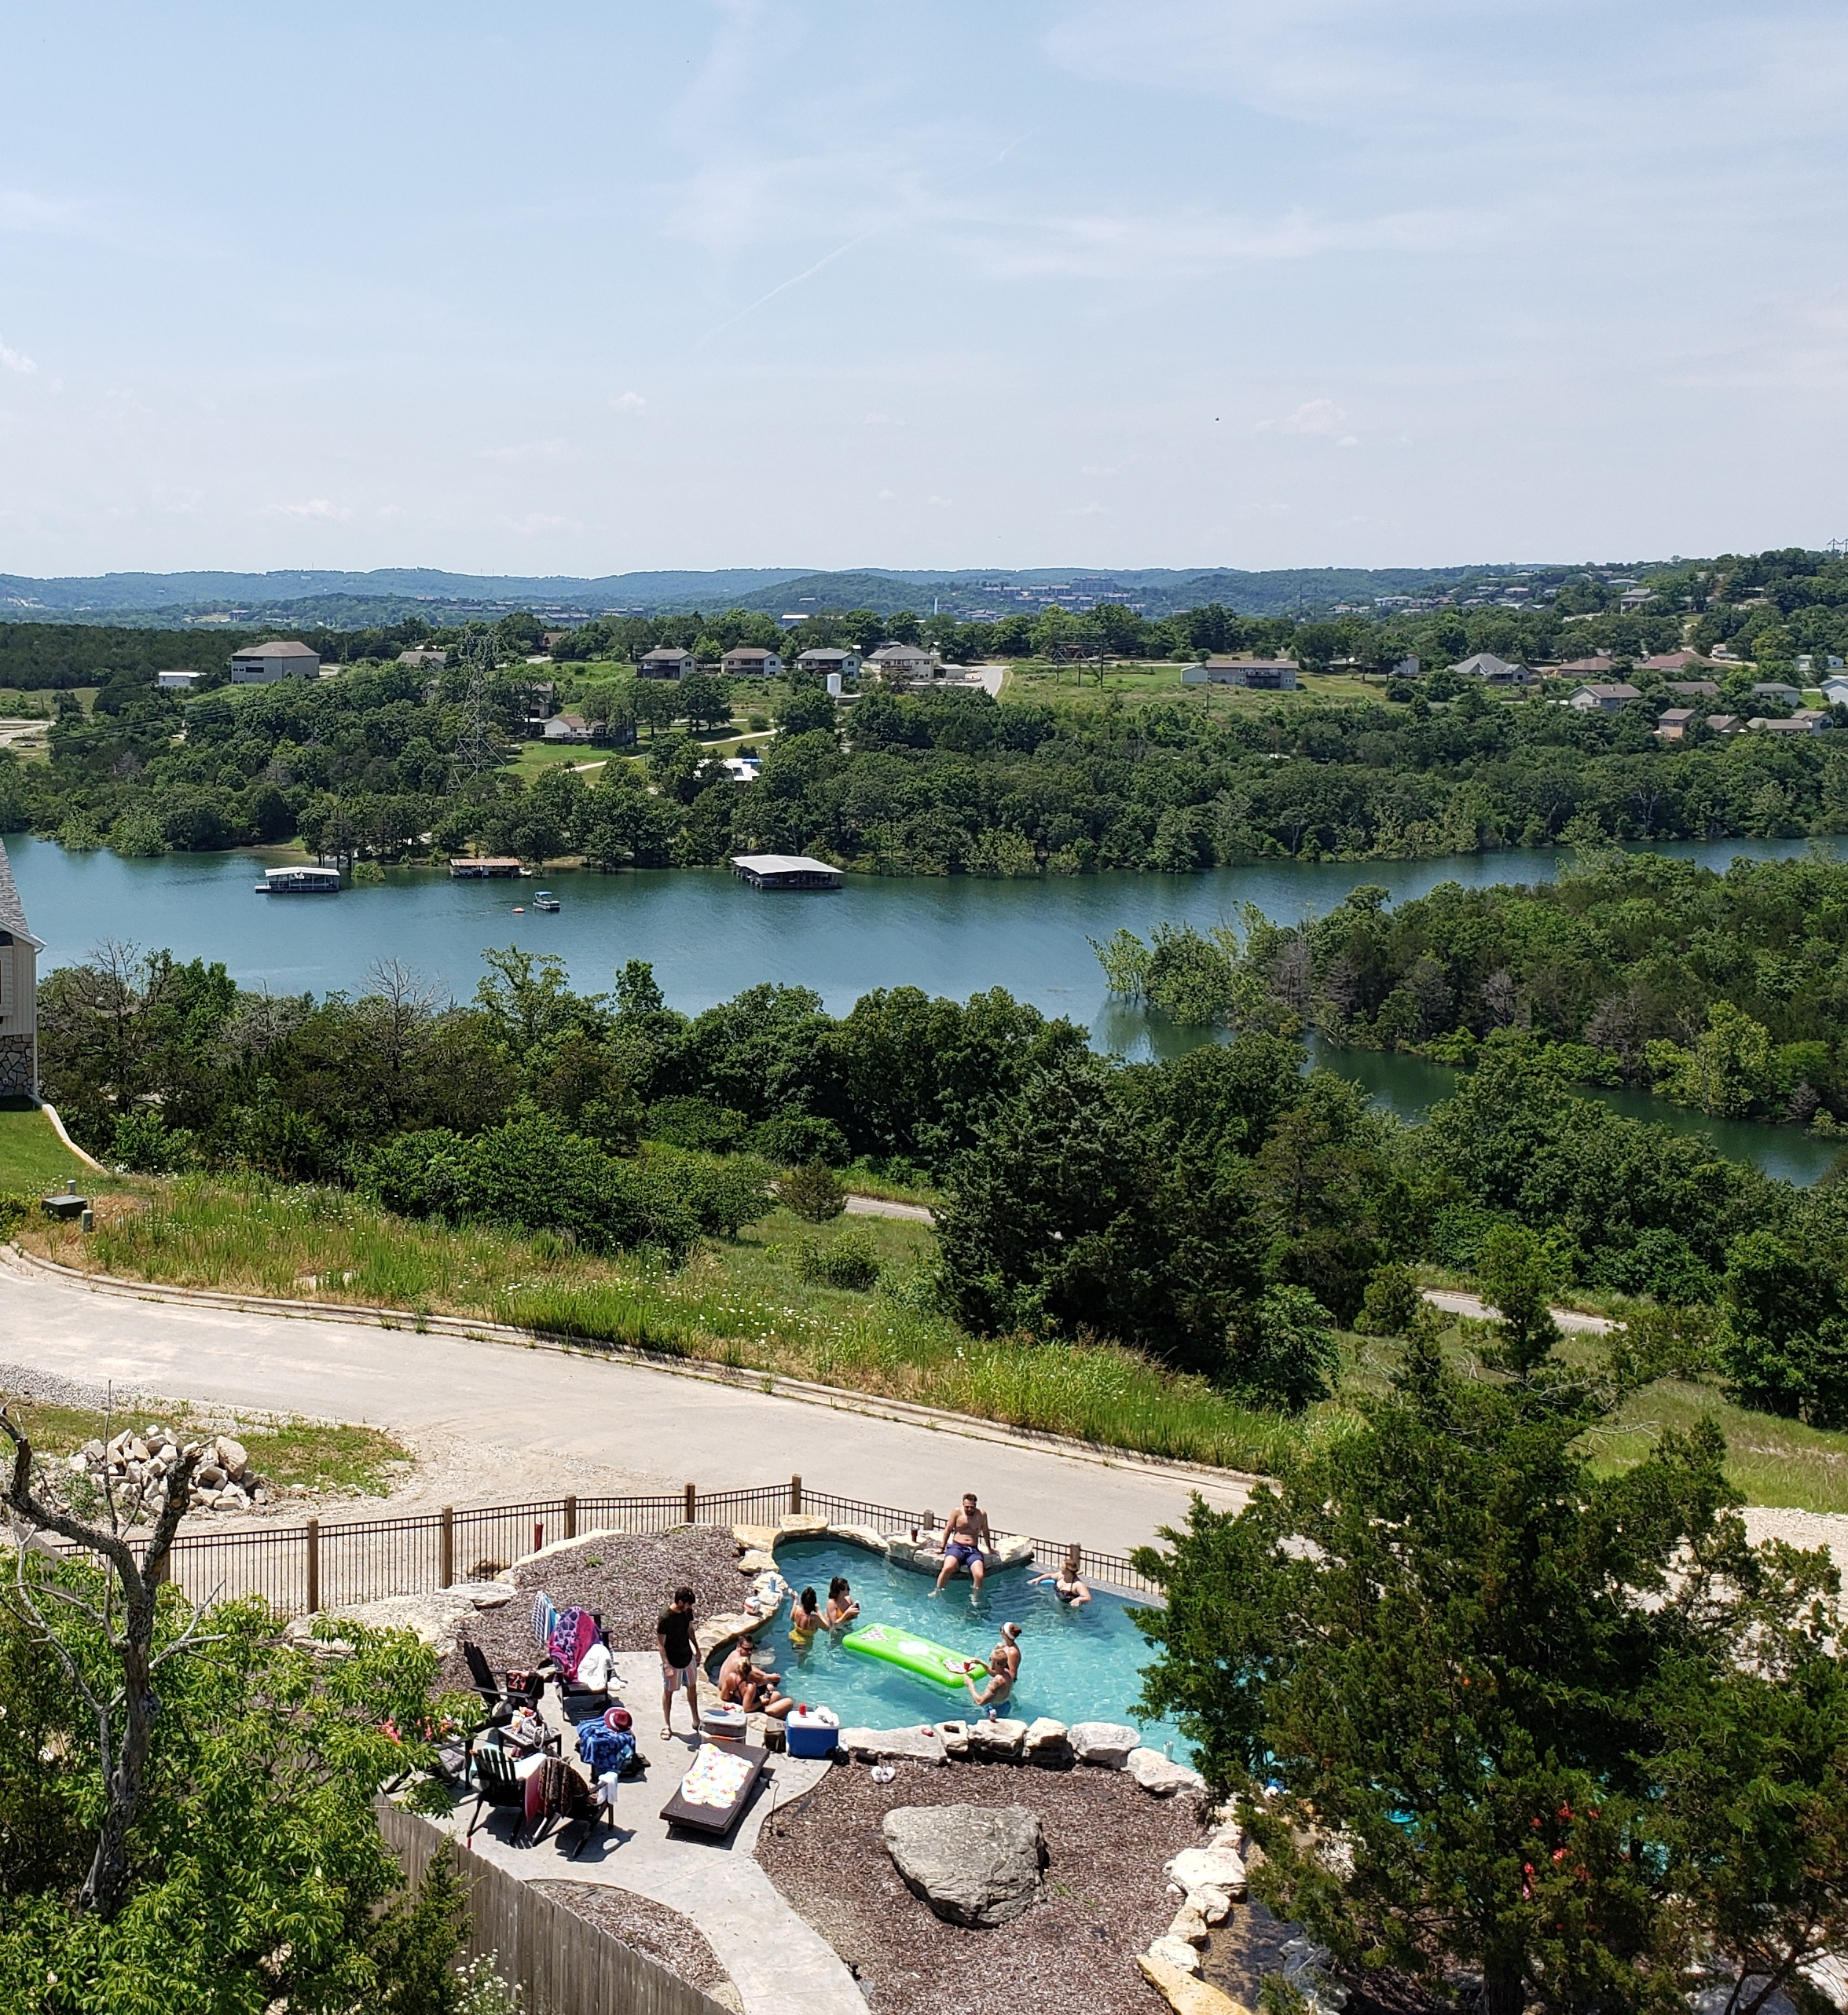 Klassic Lodge - 7 Bedroom - Beth's Breakaways, Branson, MO